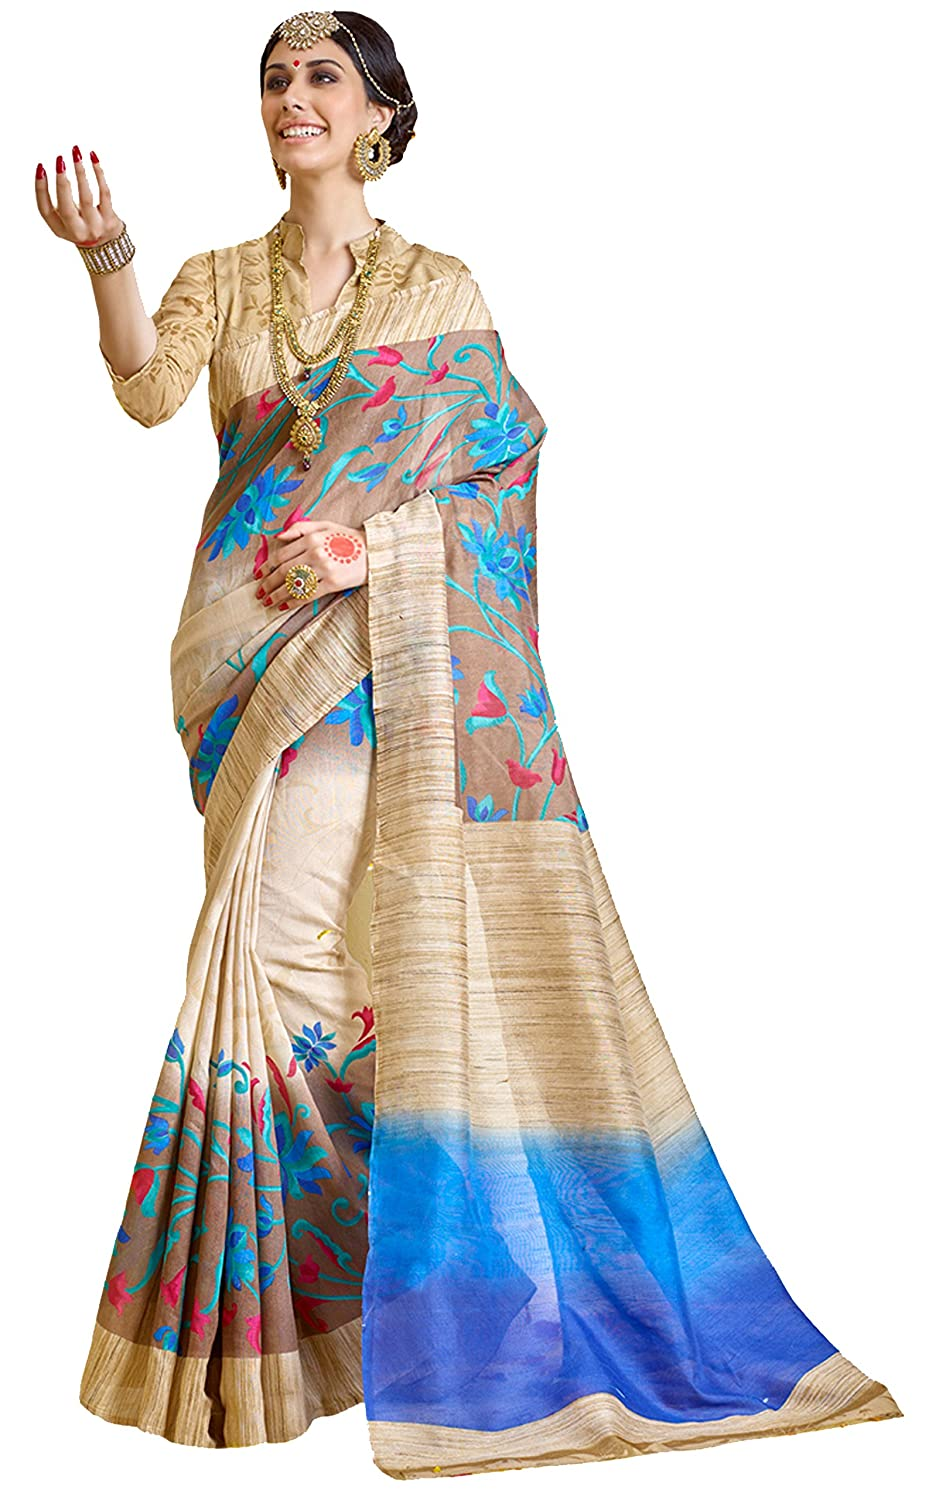 50% -80% Off On Sarees By Amazon